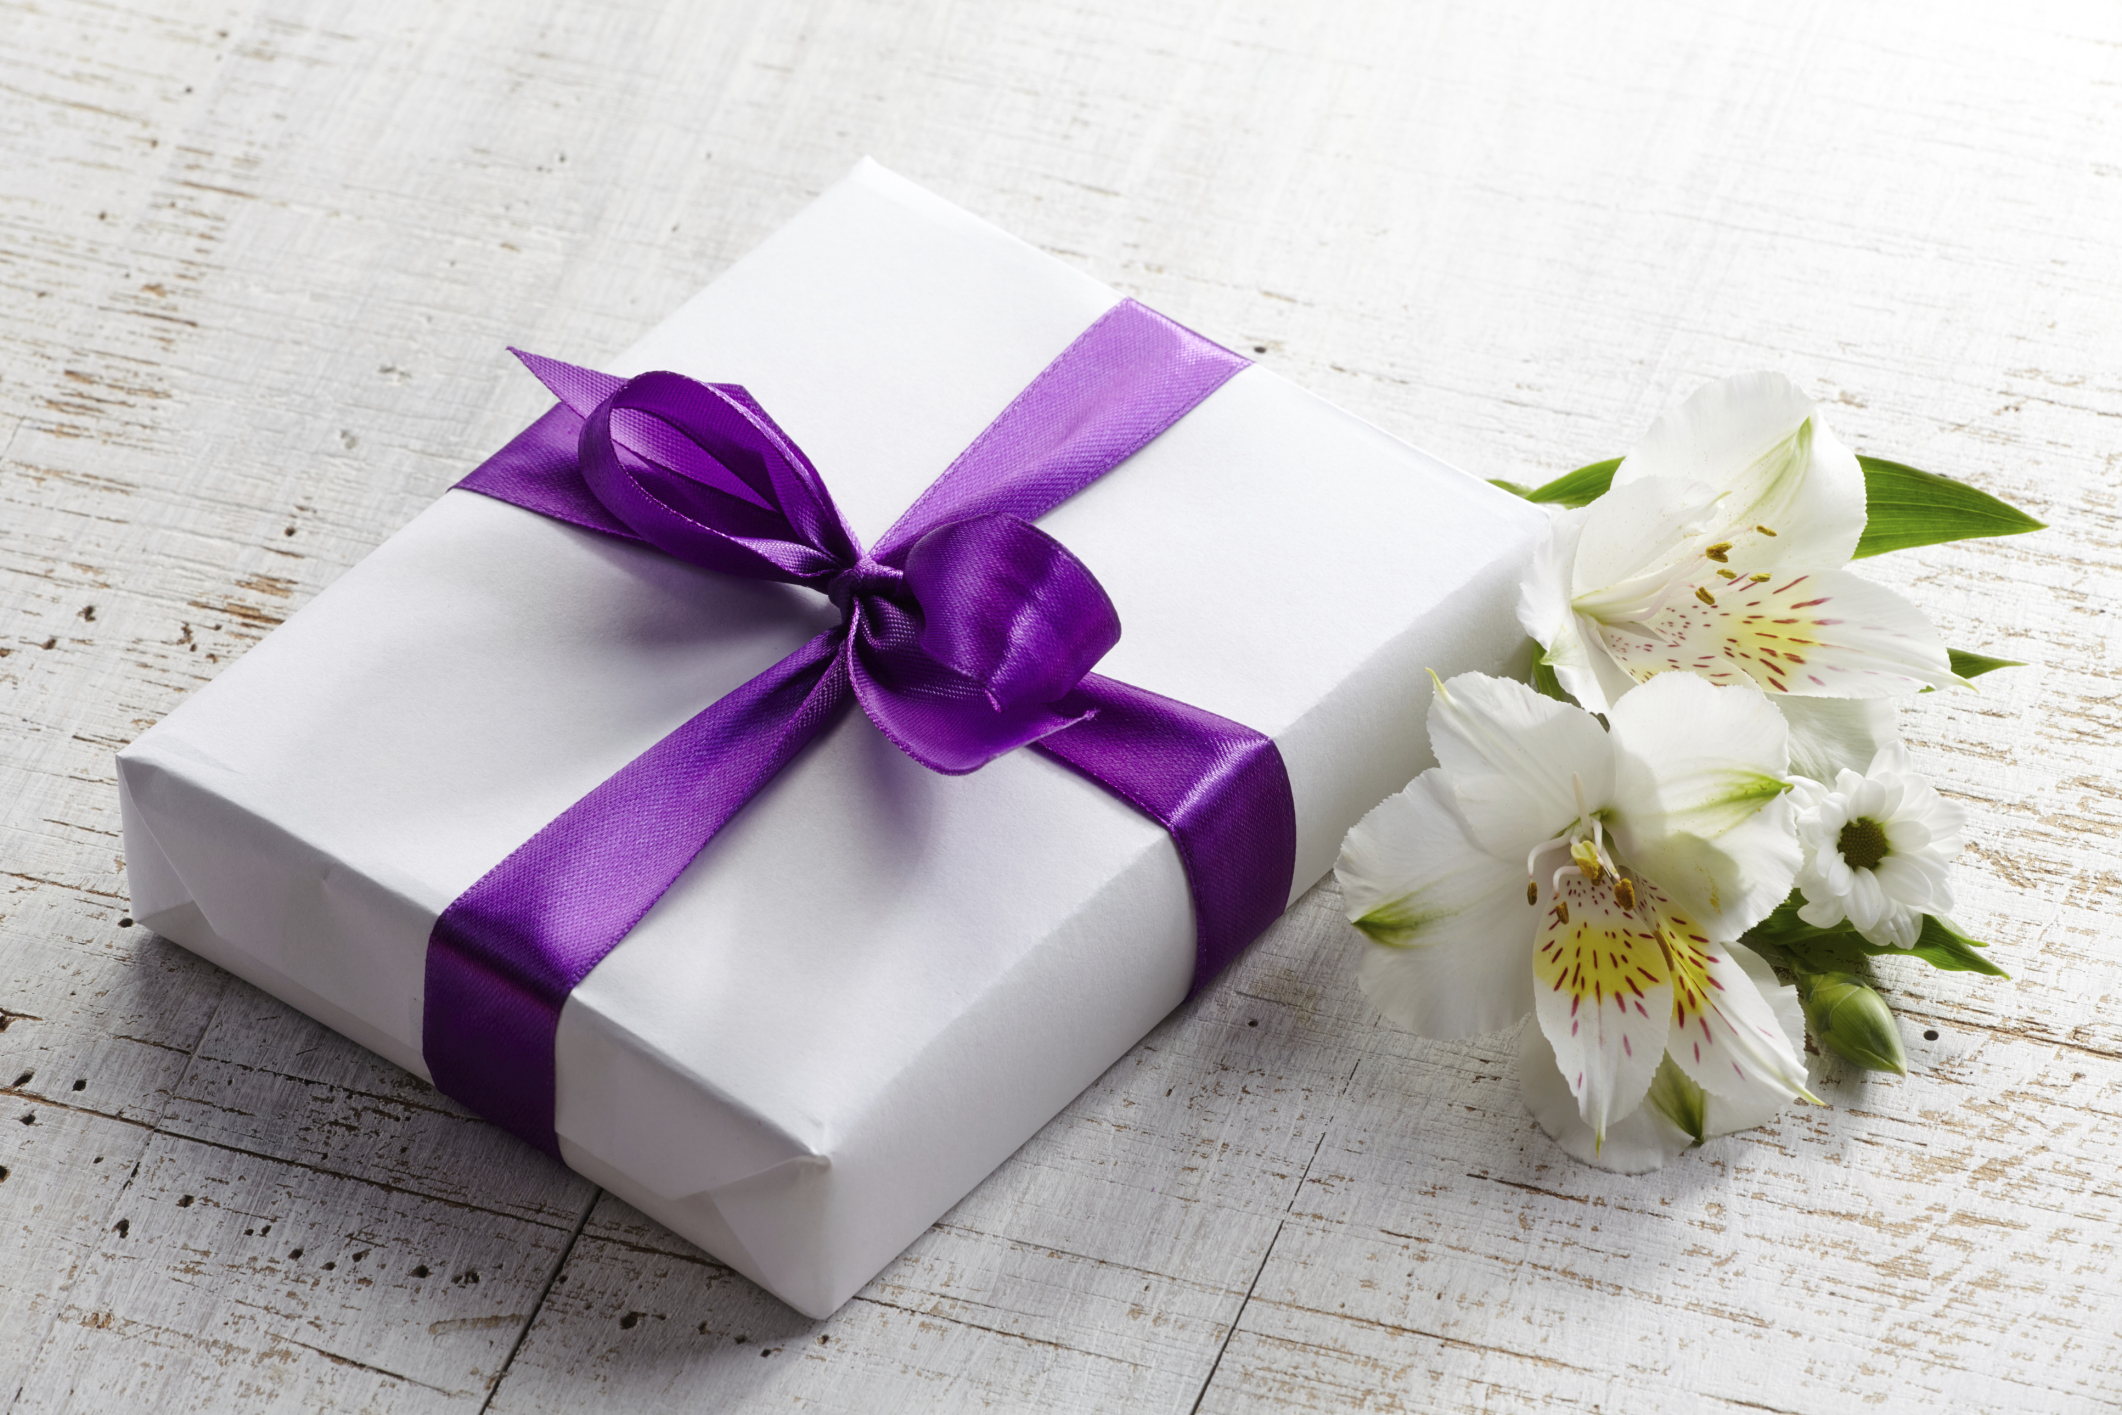 Gift registry wording and wishing well quotes articles for What to give as a wedding gift